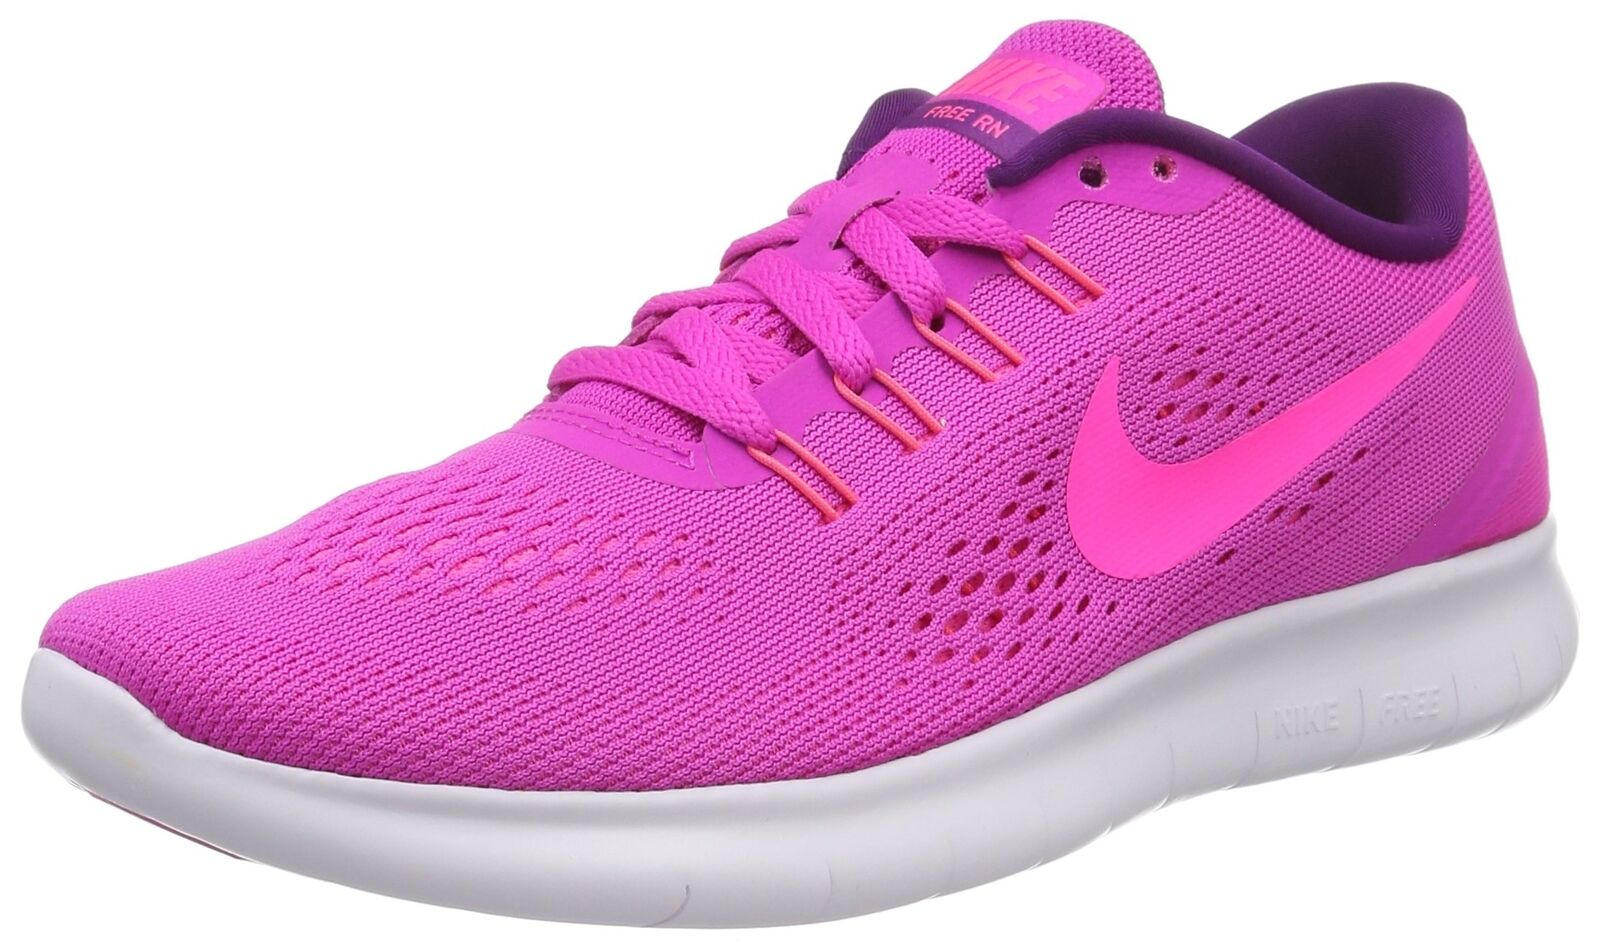 NIKE Free RN Womens Size Pink/Violet Athletic Sneakers Size Womens 8 033af8